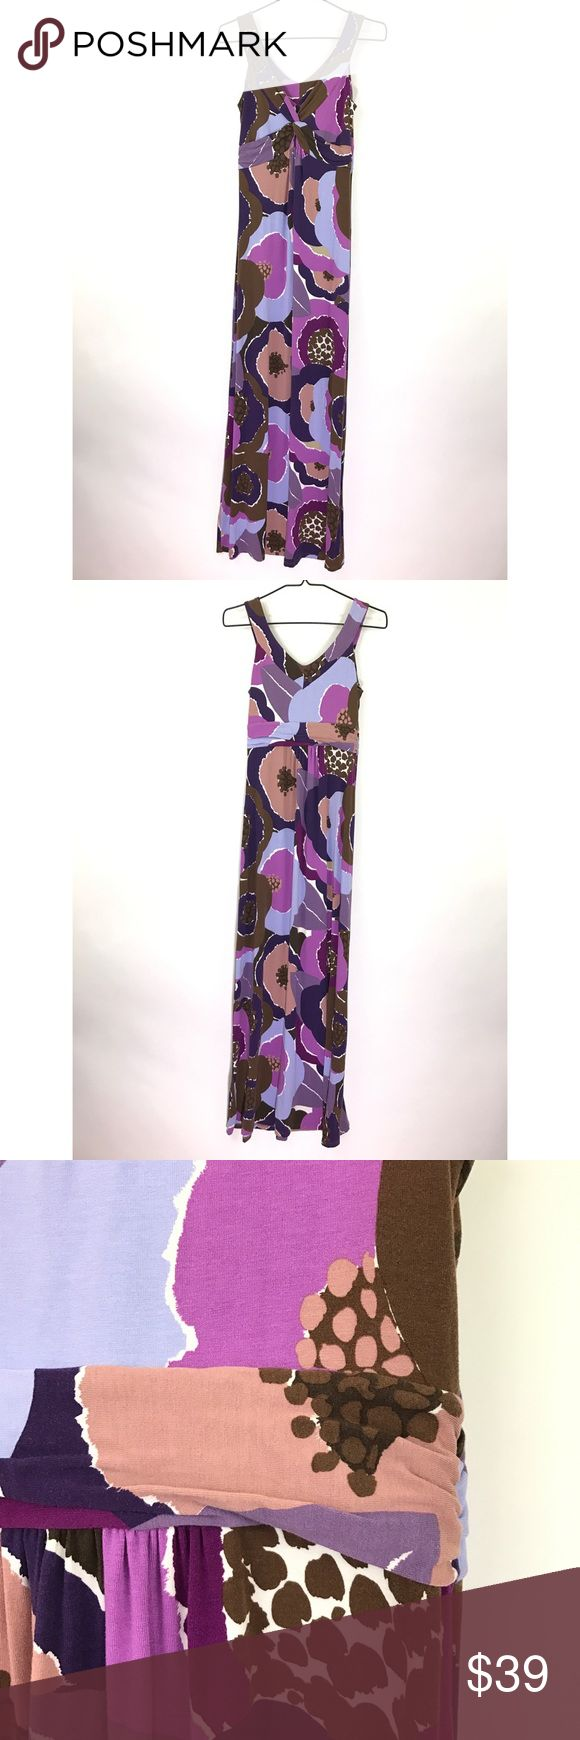 "Boden sleeveless maxi dress Floral print Sz 6 559 Boden Sleeveless Maxi Dress Floral Print Purple & Brown Women's Size 6 Long   Measurements: Bust:  15"" Flat Across has some stretch it's a jersey knit Waist:  12"" Flat Across has some stretch it's a jersey knit Length:  56""  Long  In good preowned condition with no known flaws and light overall wear. Boden Dresses Maxi"